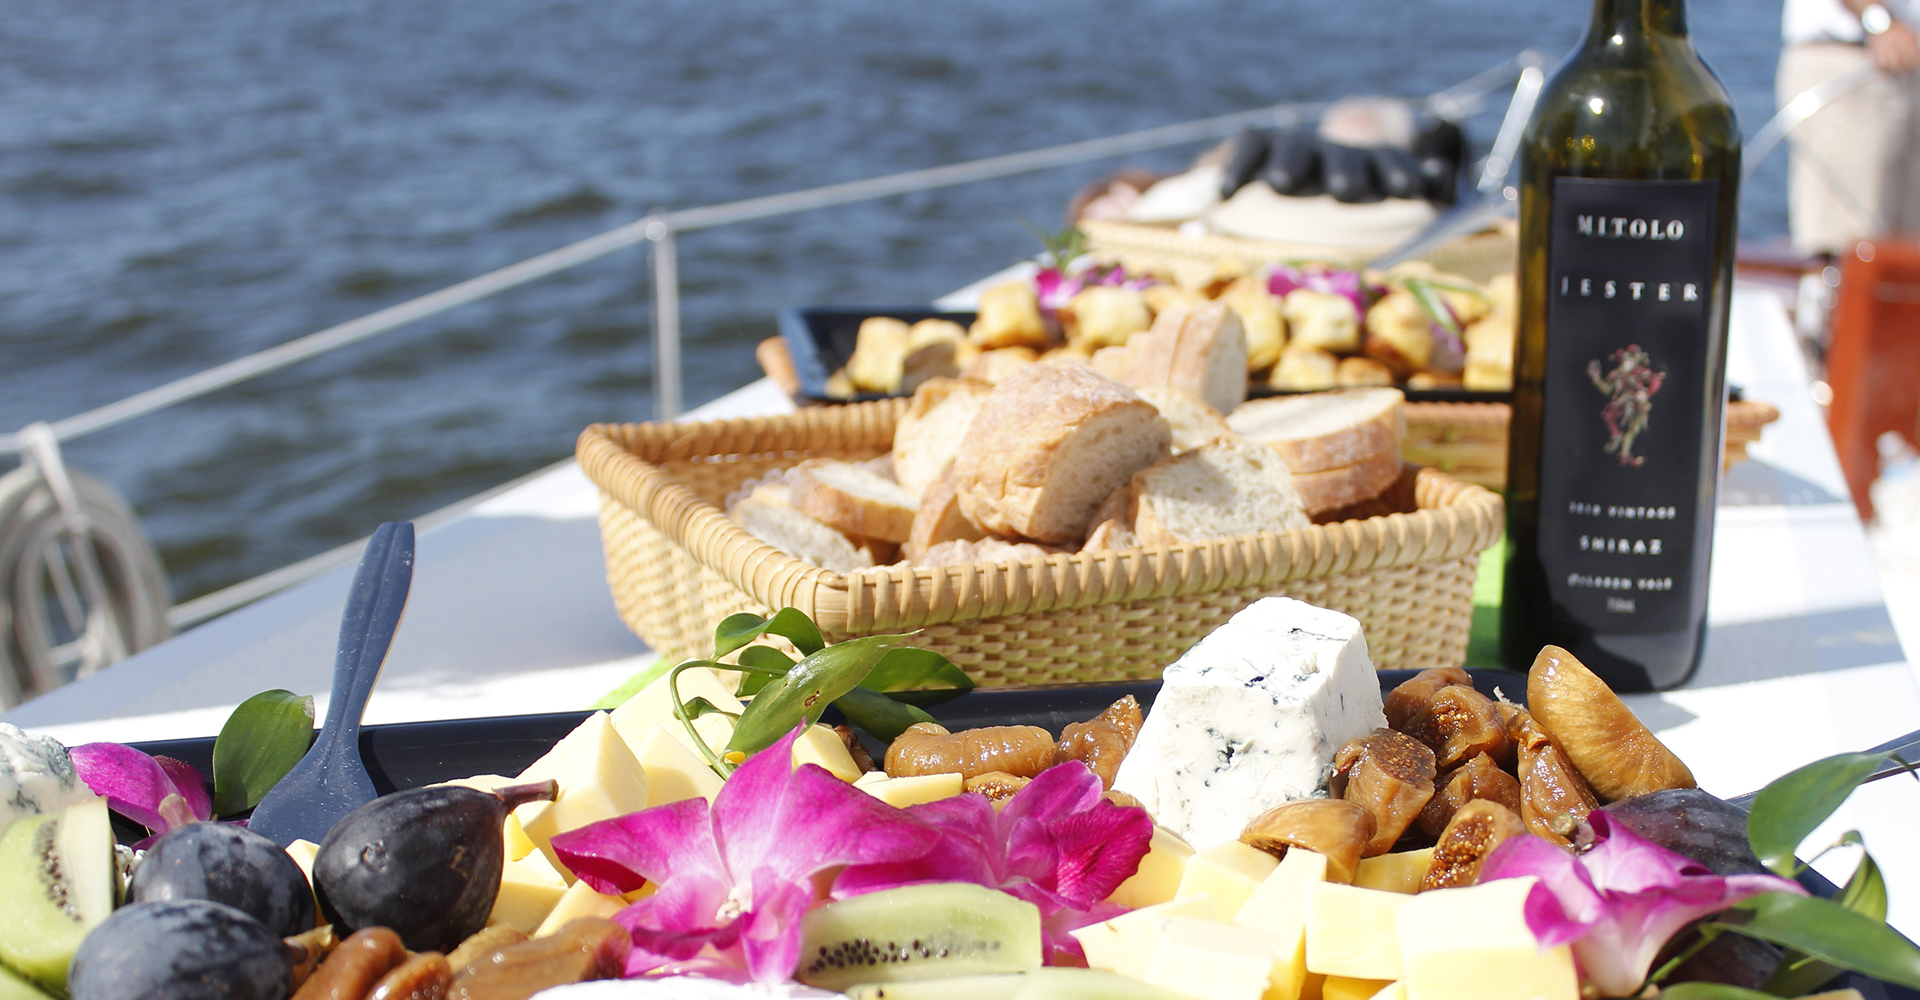 Food and wine displayed on board the schooner in the sunshine